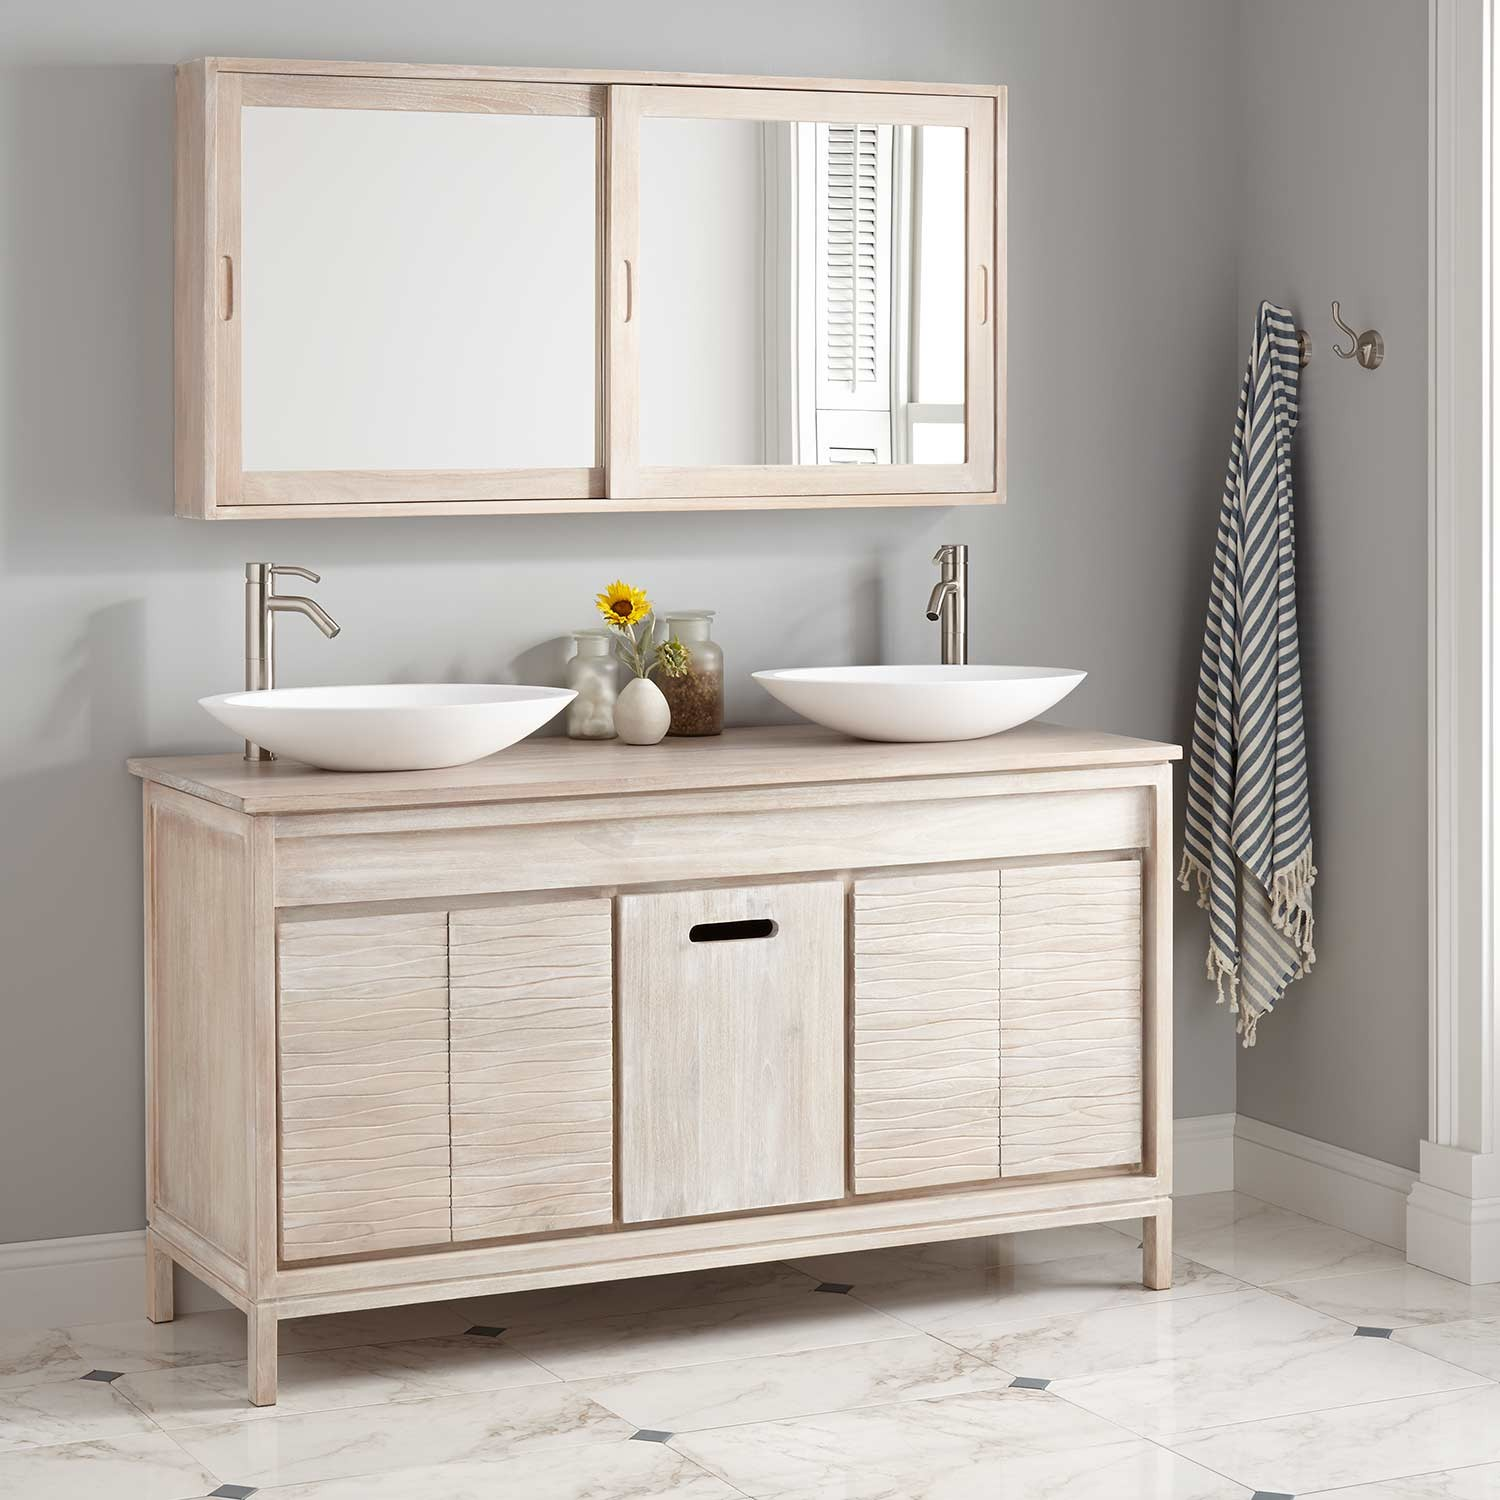 Picture of: White Double Vanity